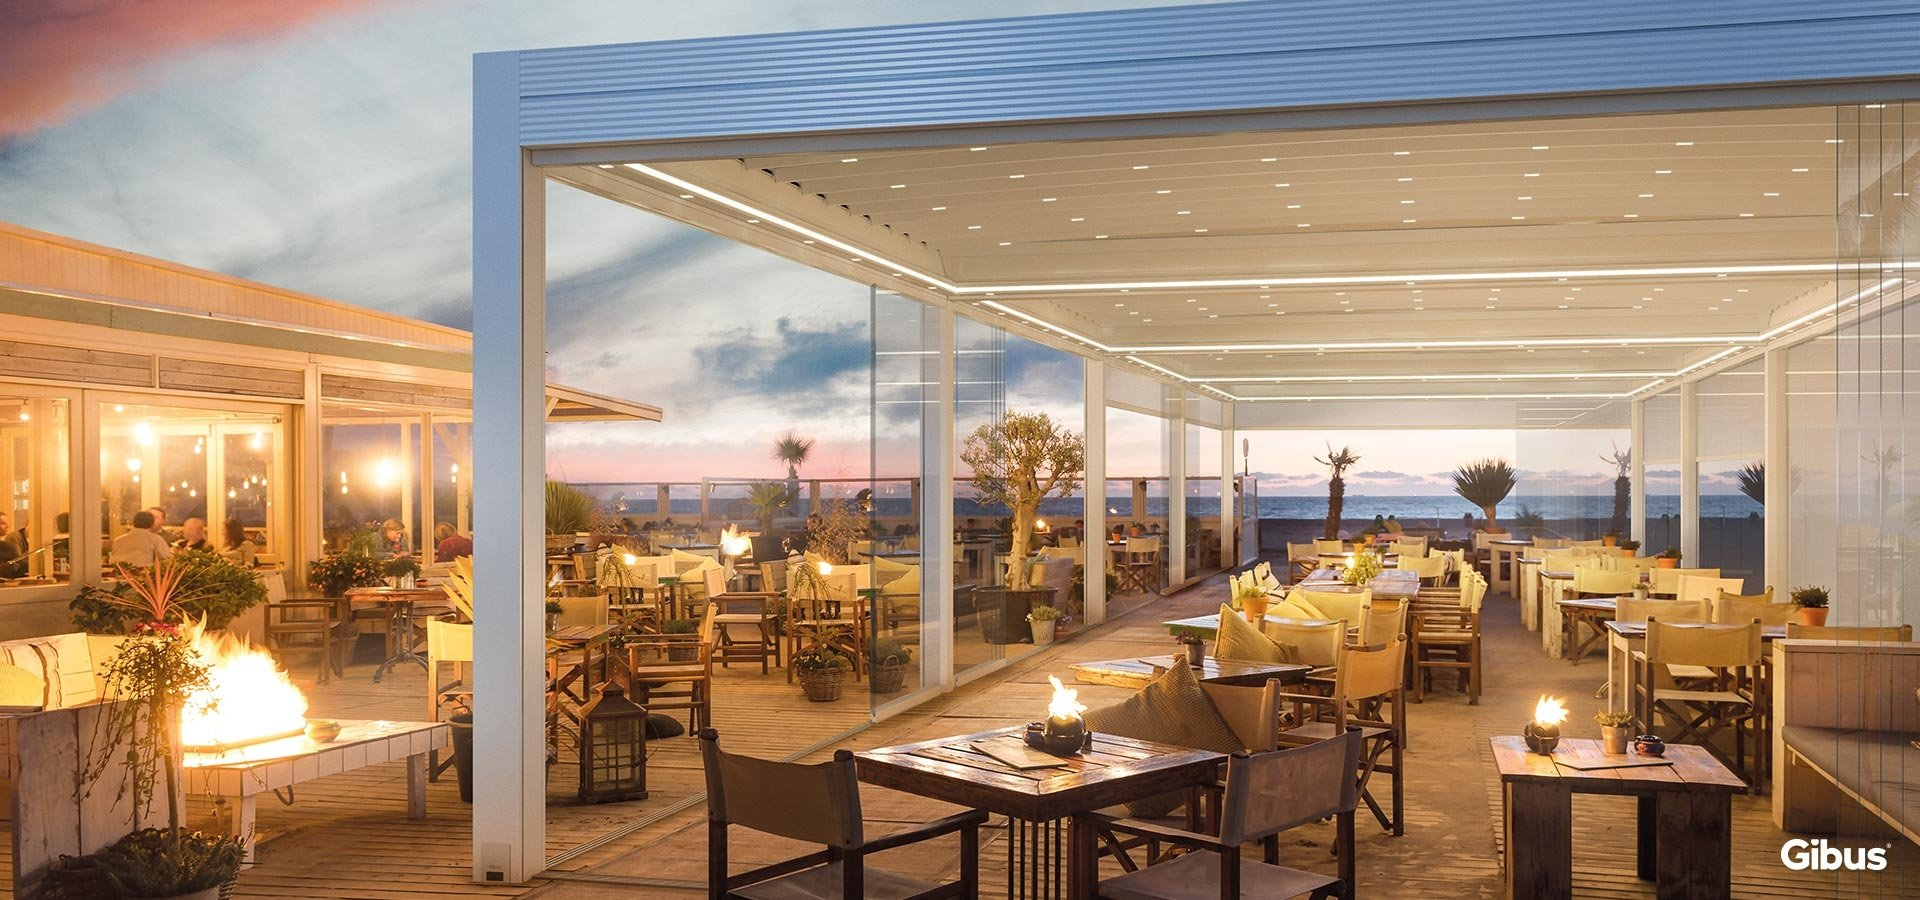 Gibus Azimut Retractable Roof systems